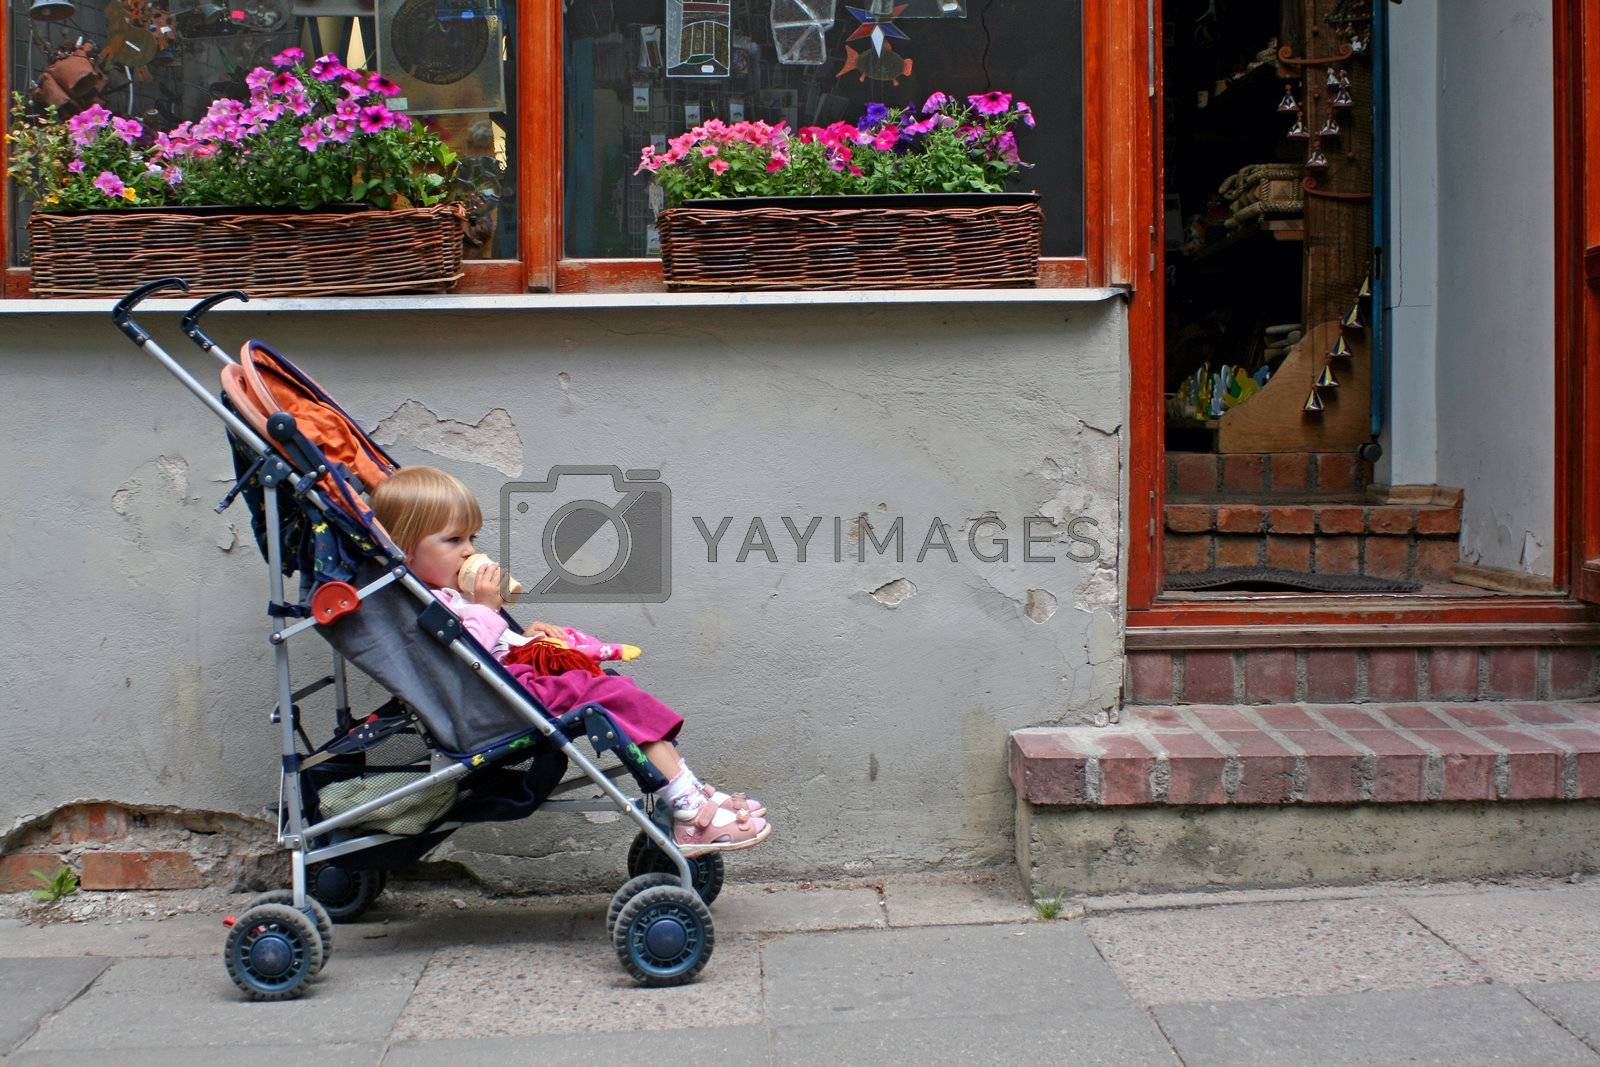 2-3 years old child sitting in the pram in front of the shop doors, eating ice cream and waiting for parent